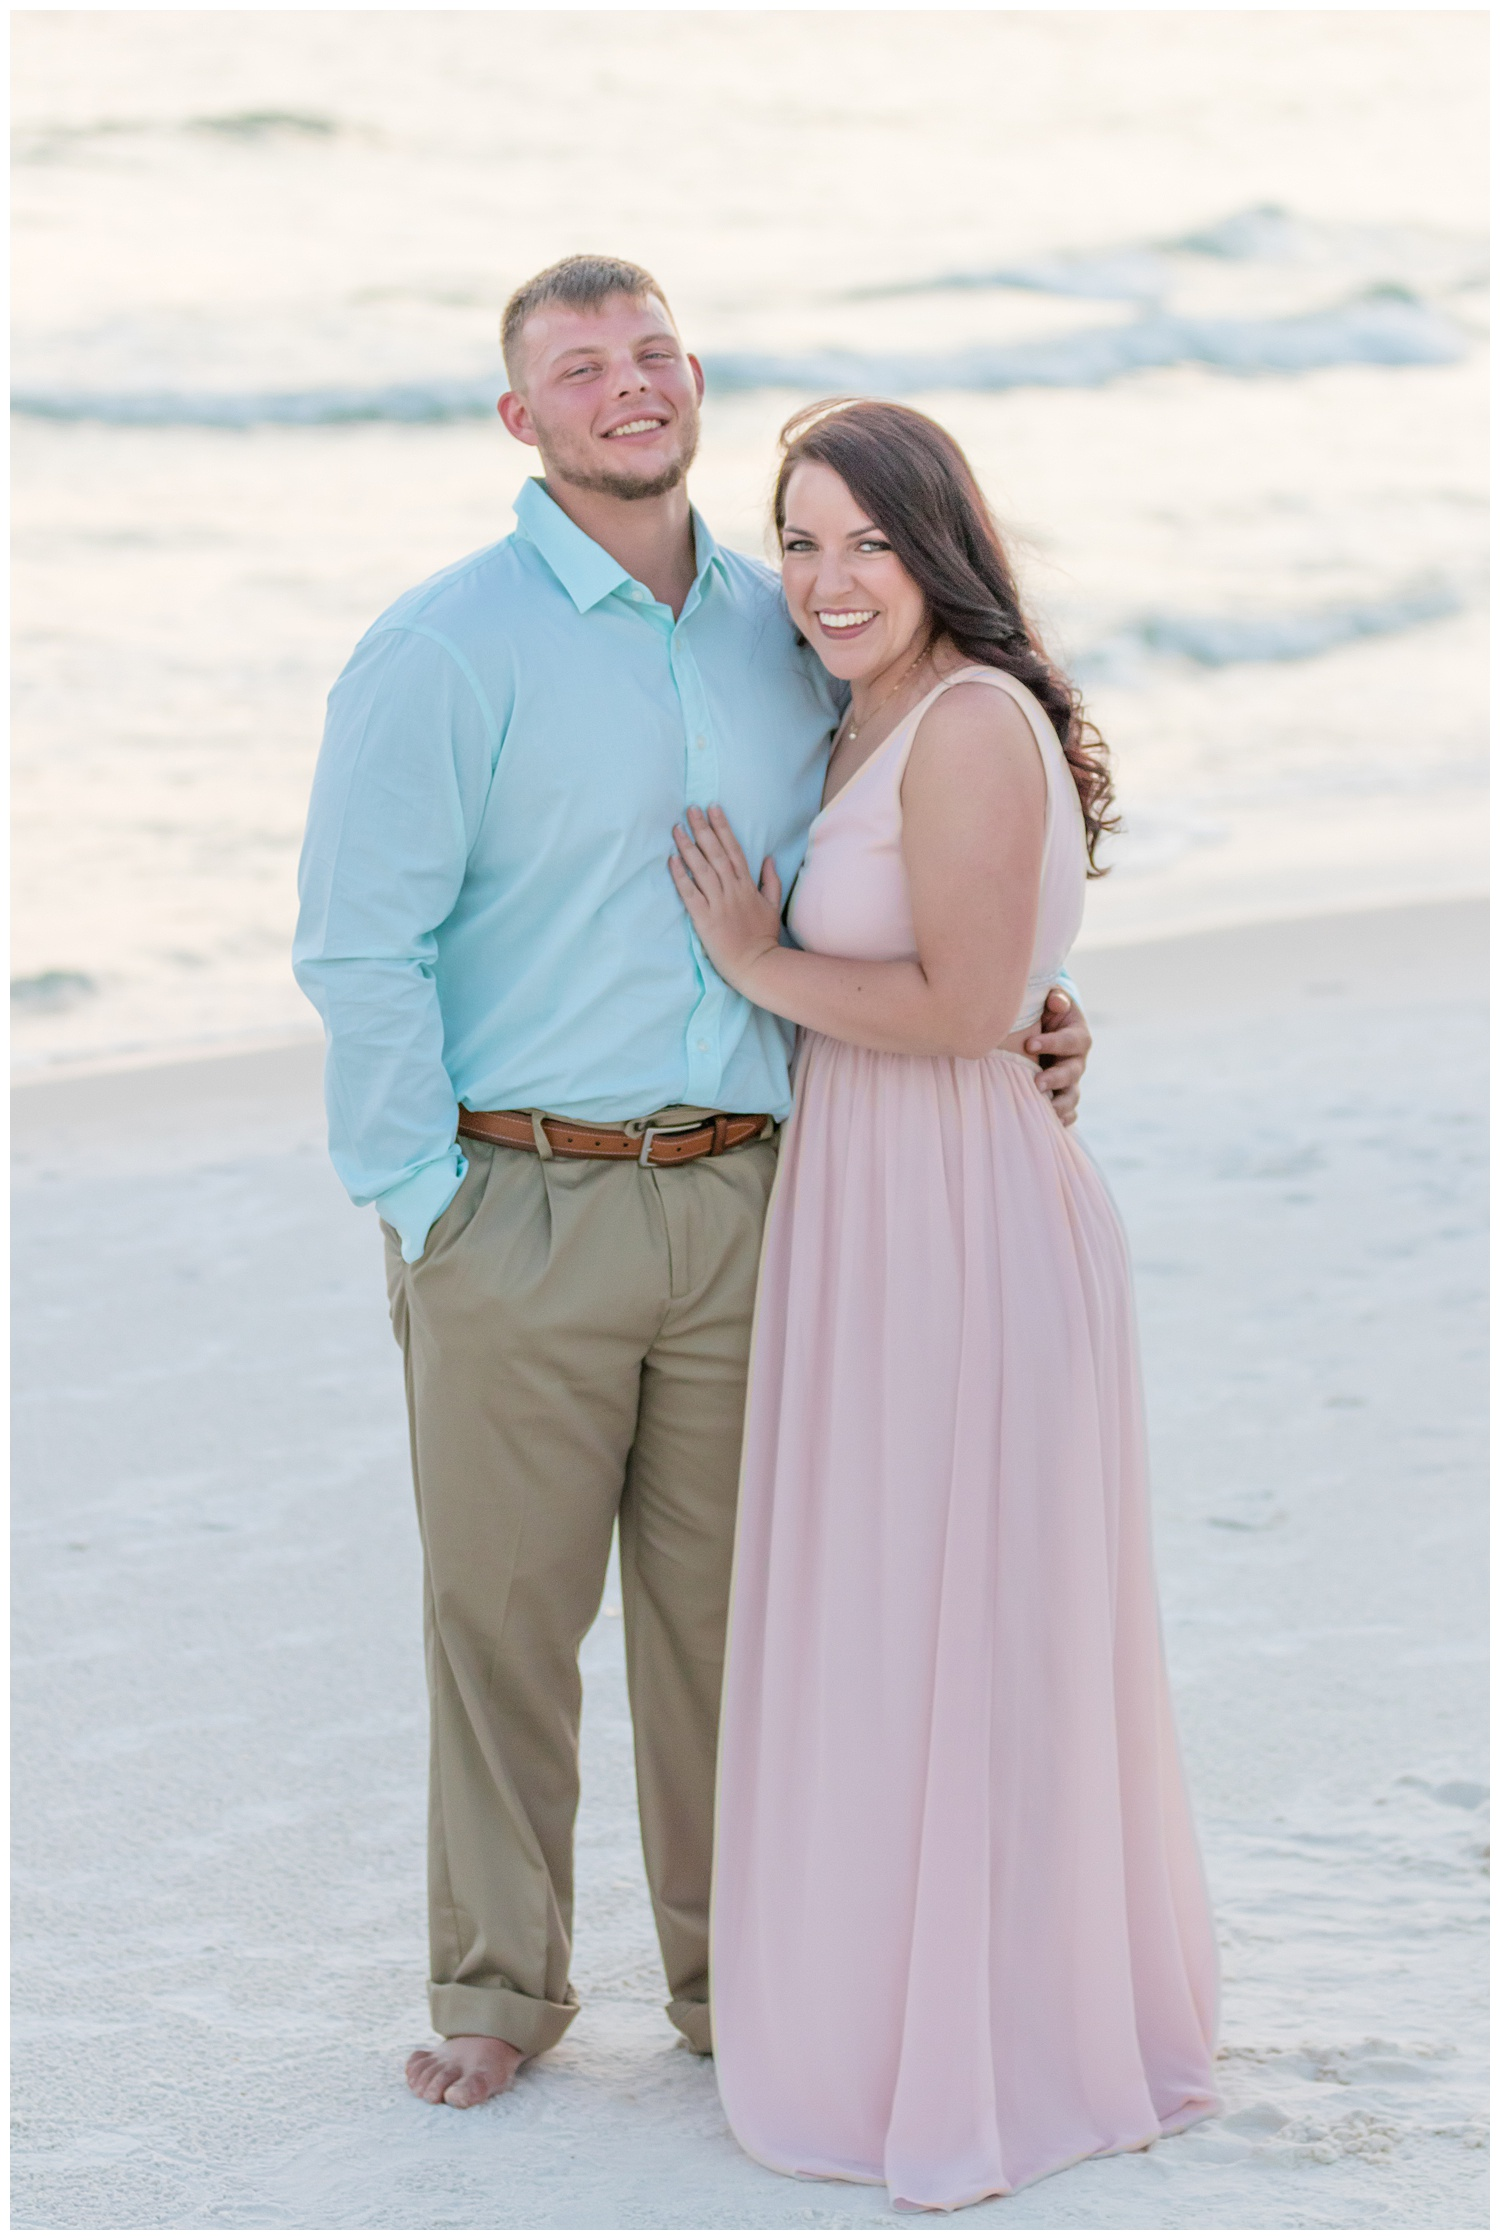 Panama city beach proposal session during couples session